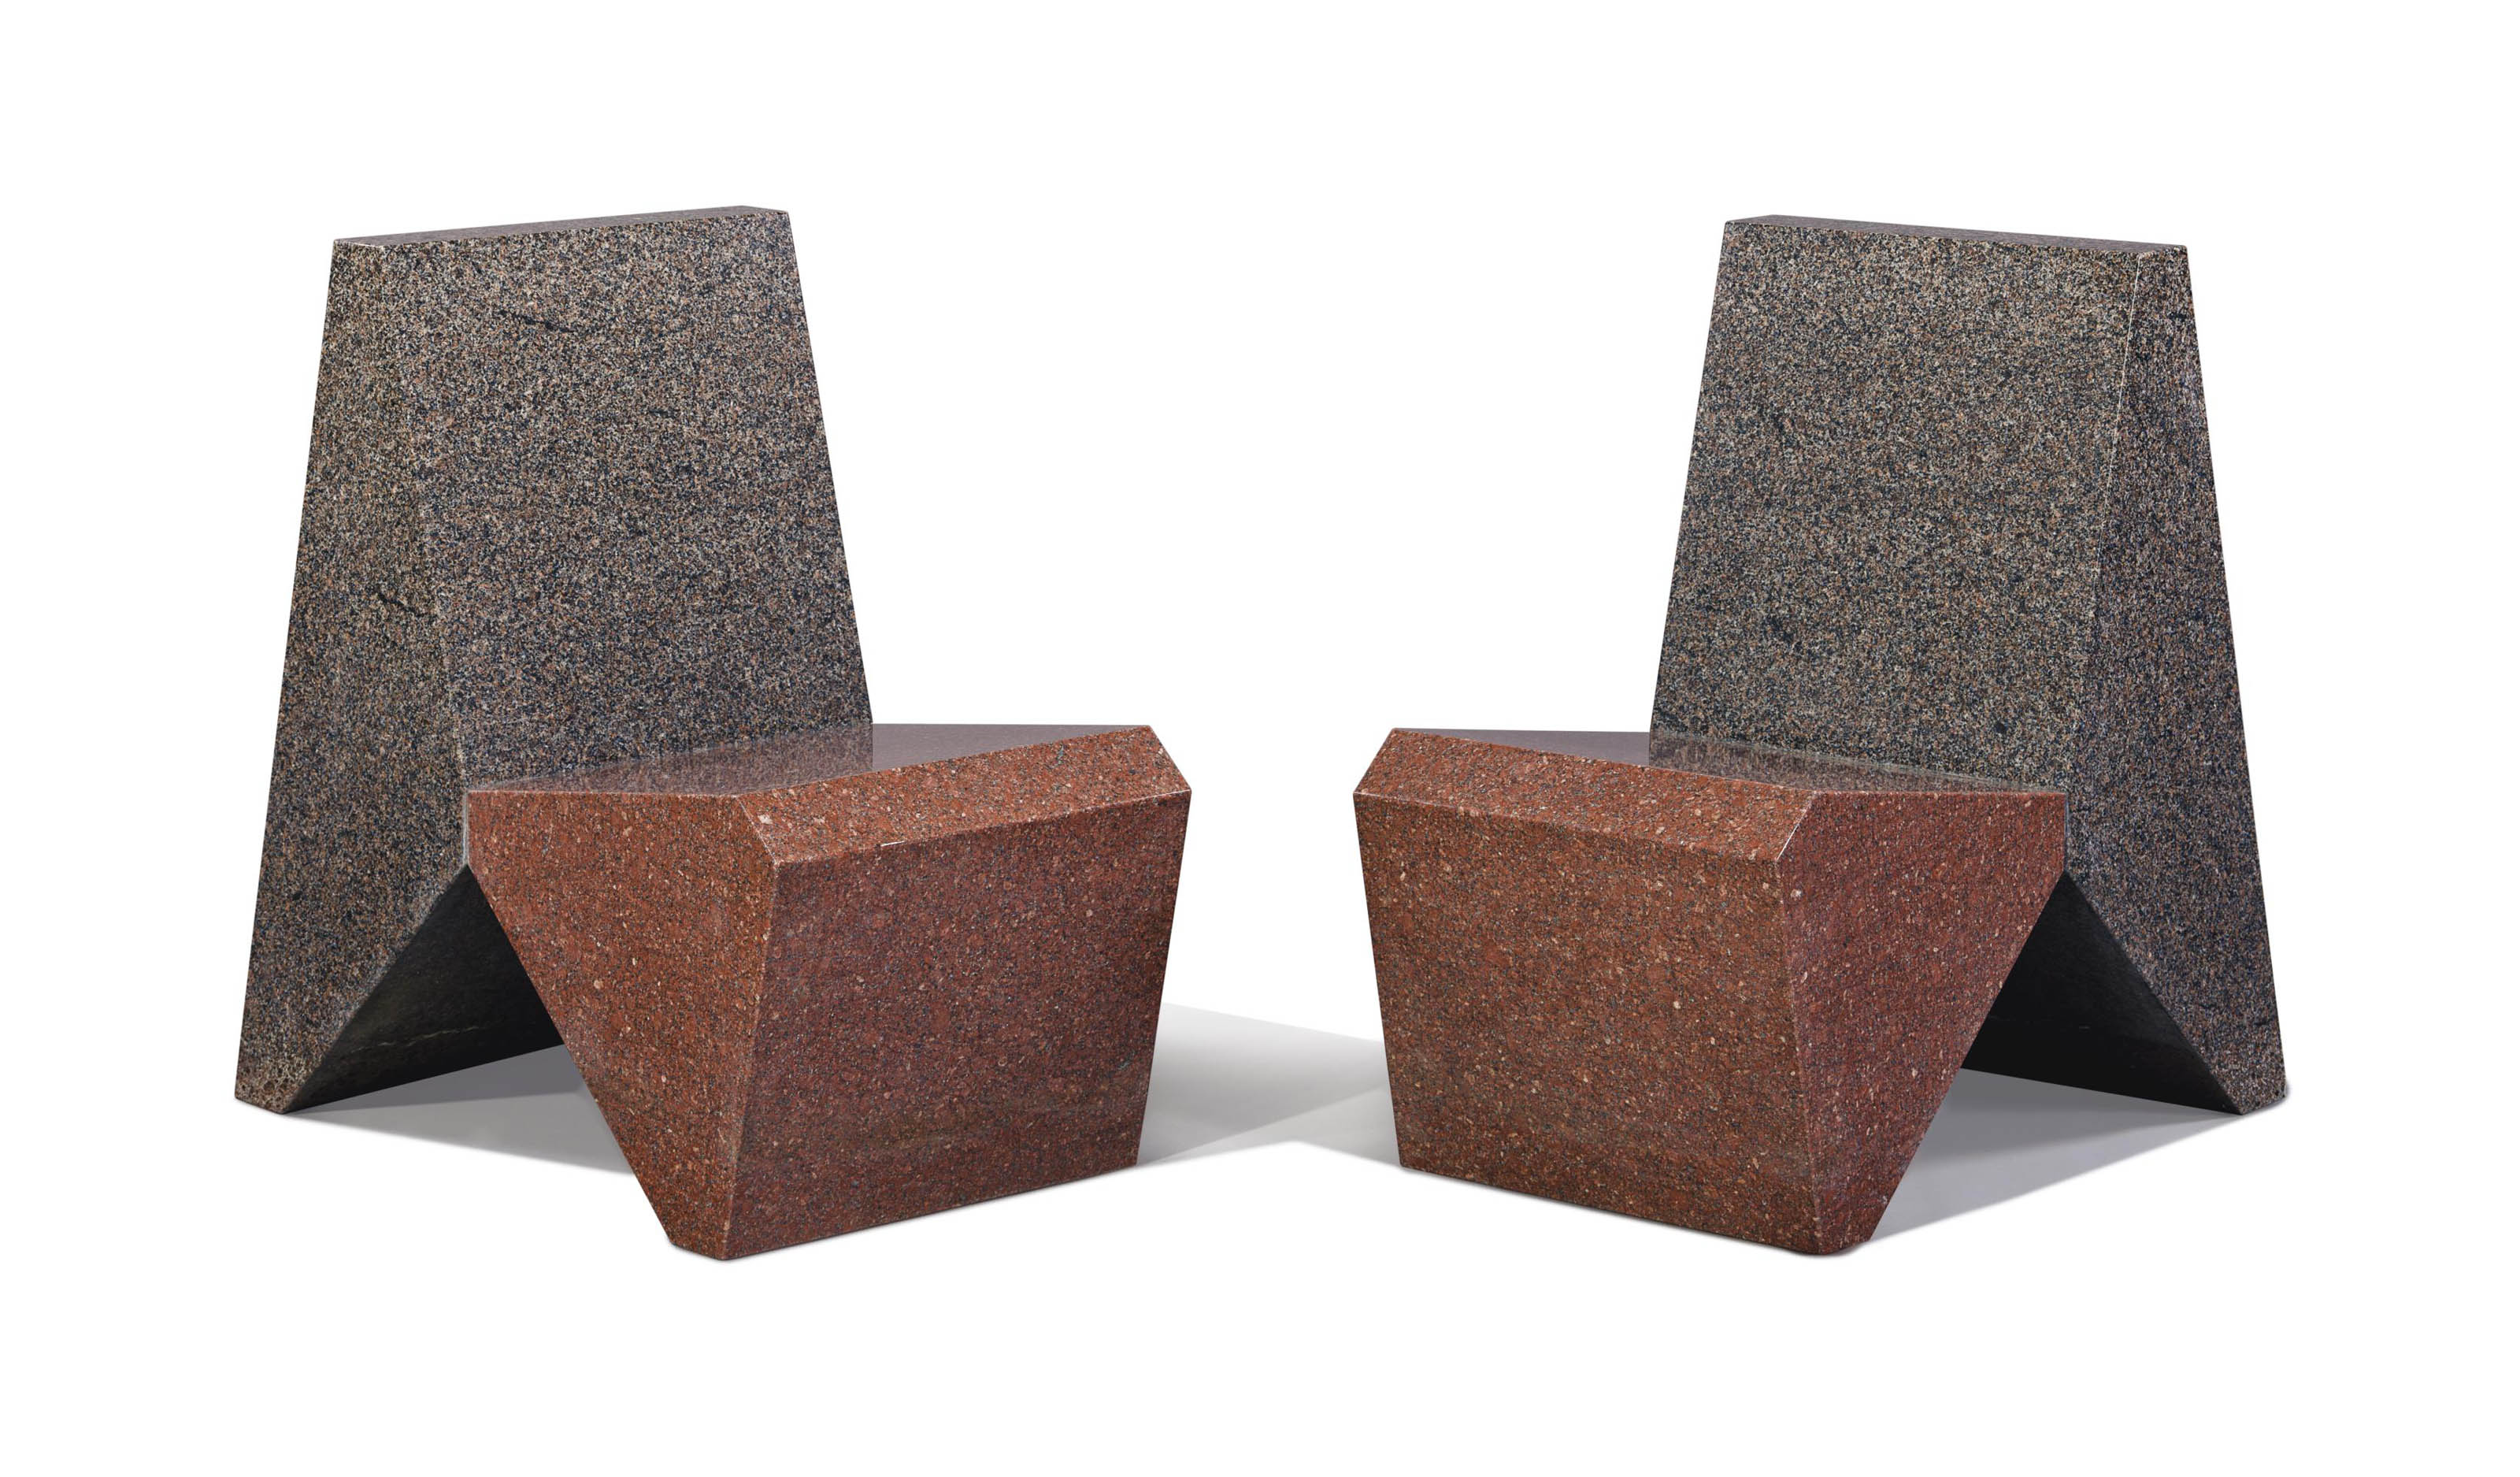 A Pair of Two Granite Chairs